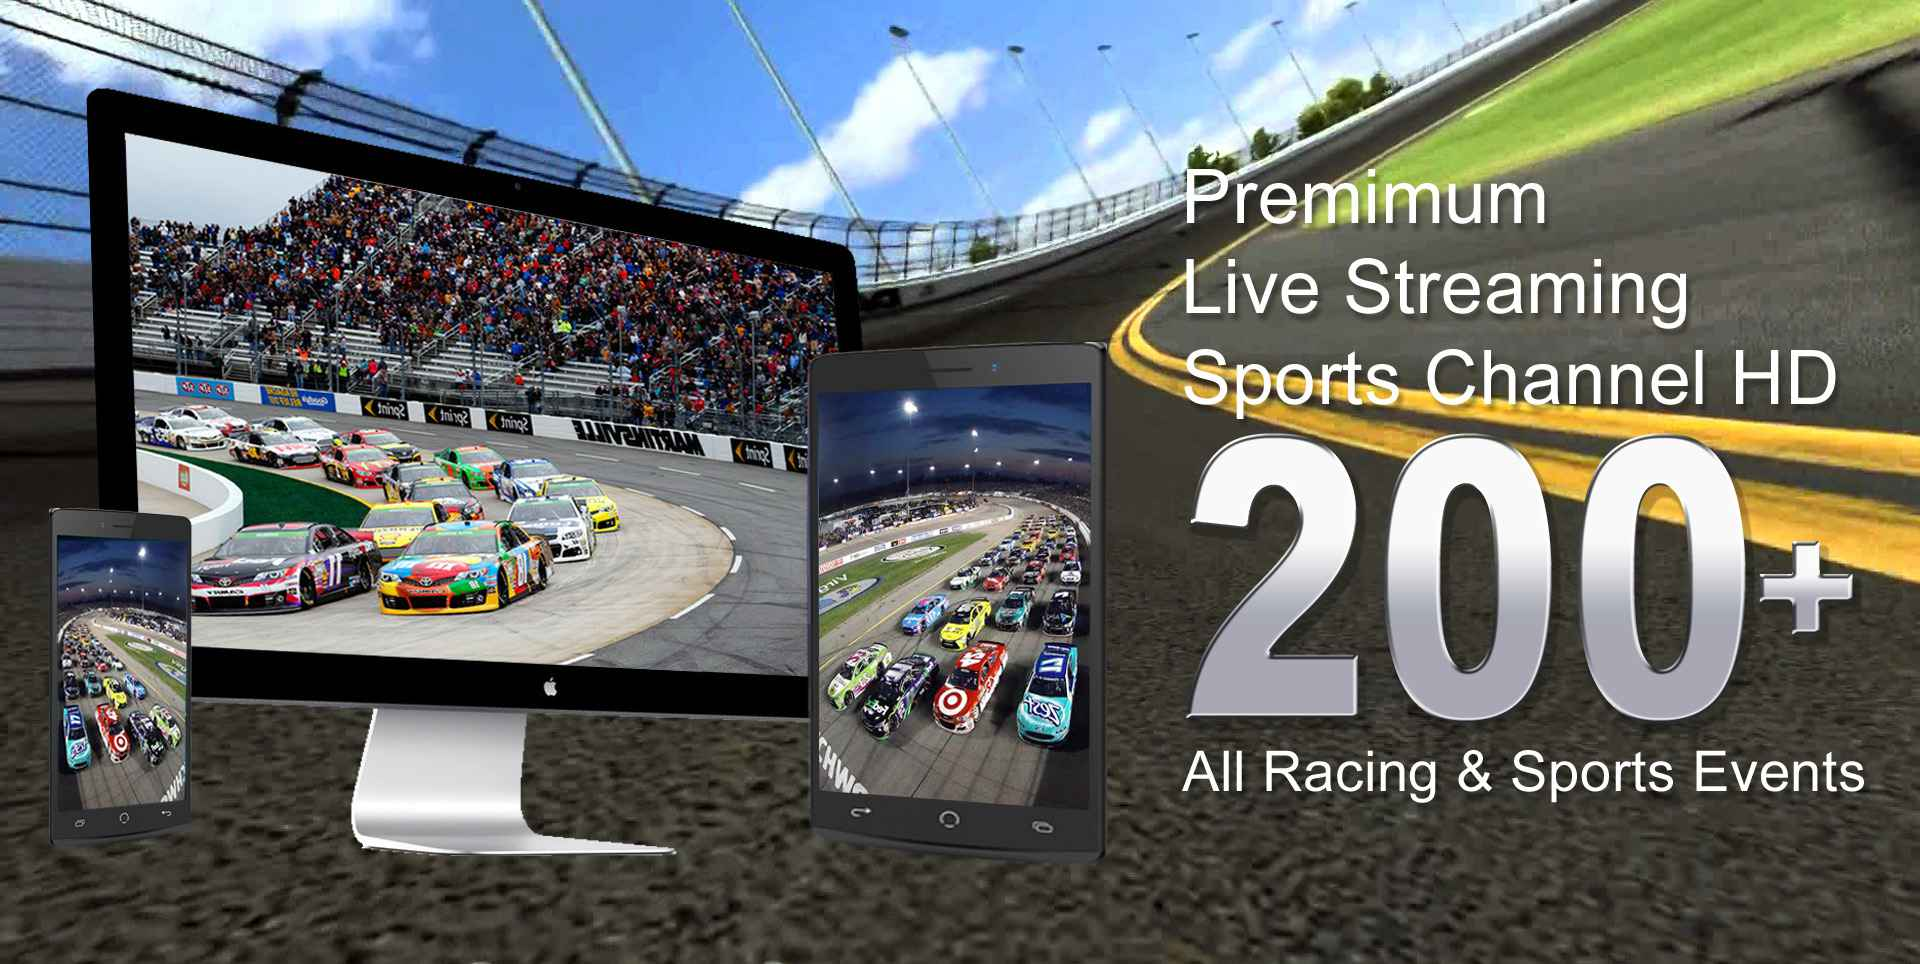 Sprint Cup series AAA Texas 500 Live Stream